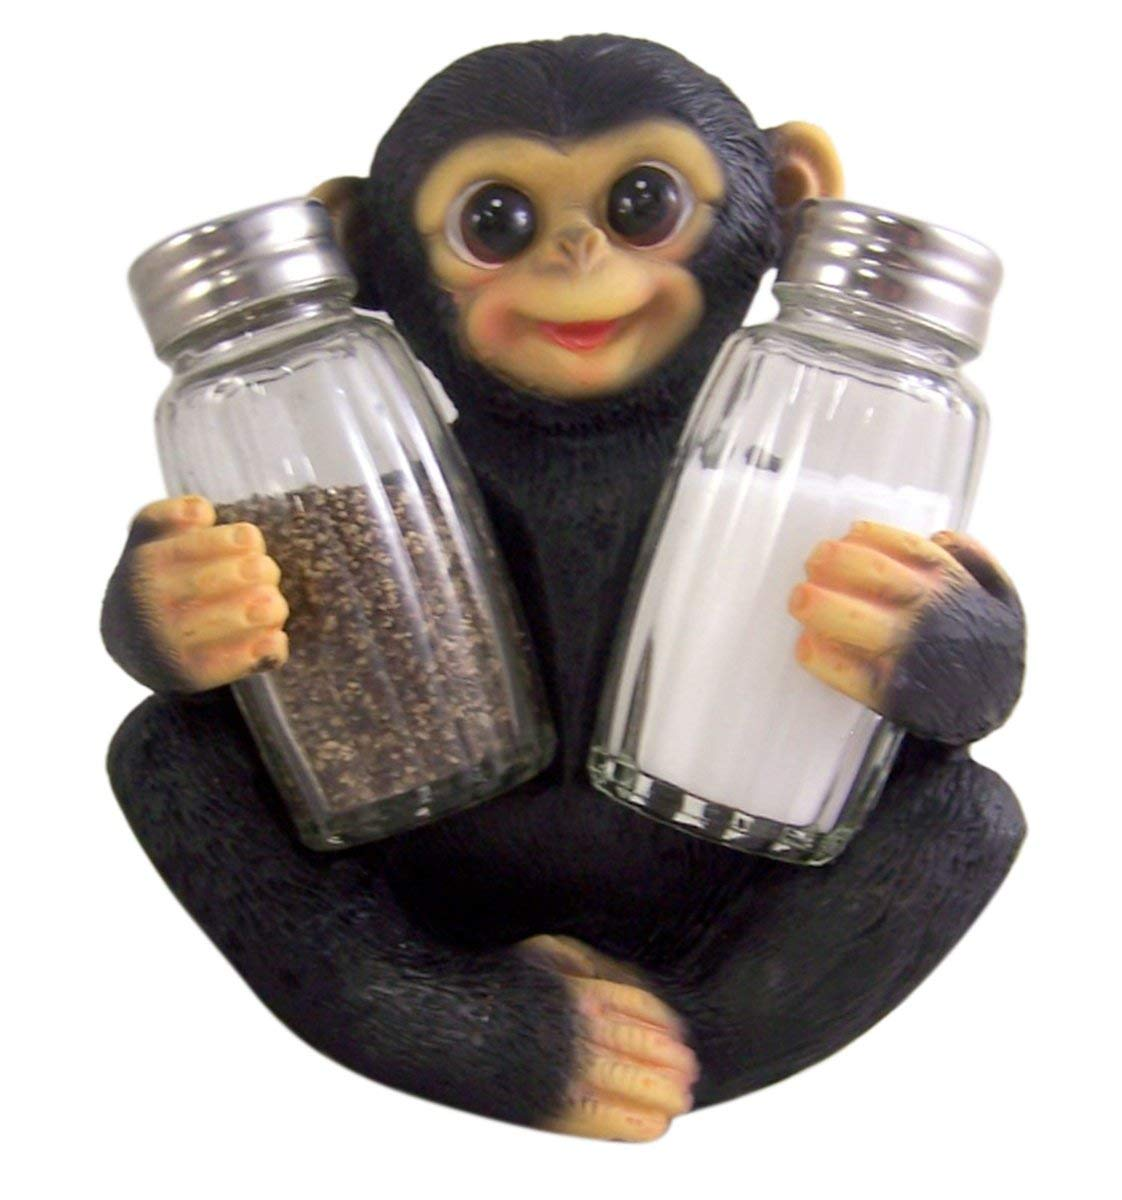 Whimsical Chimpanzee Resin Figurine Salt and Pepper Shaker Holder (Shakers Included)